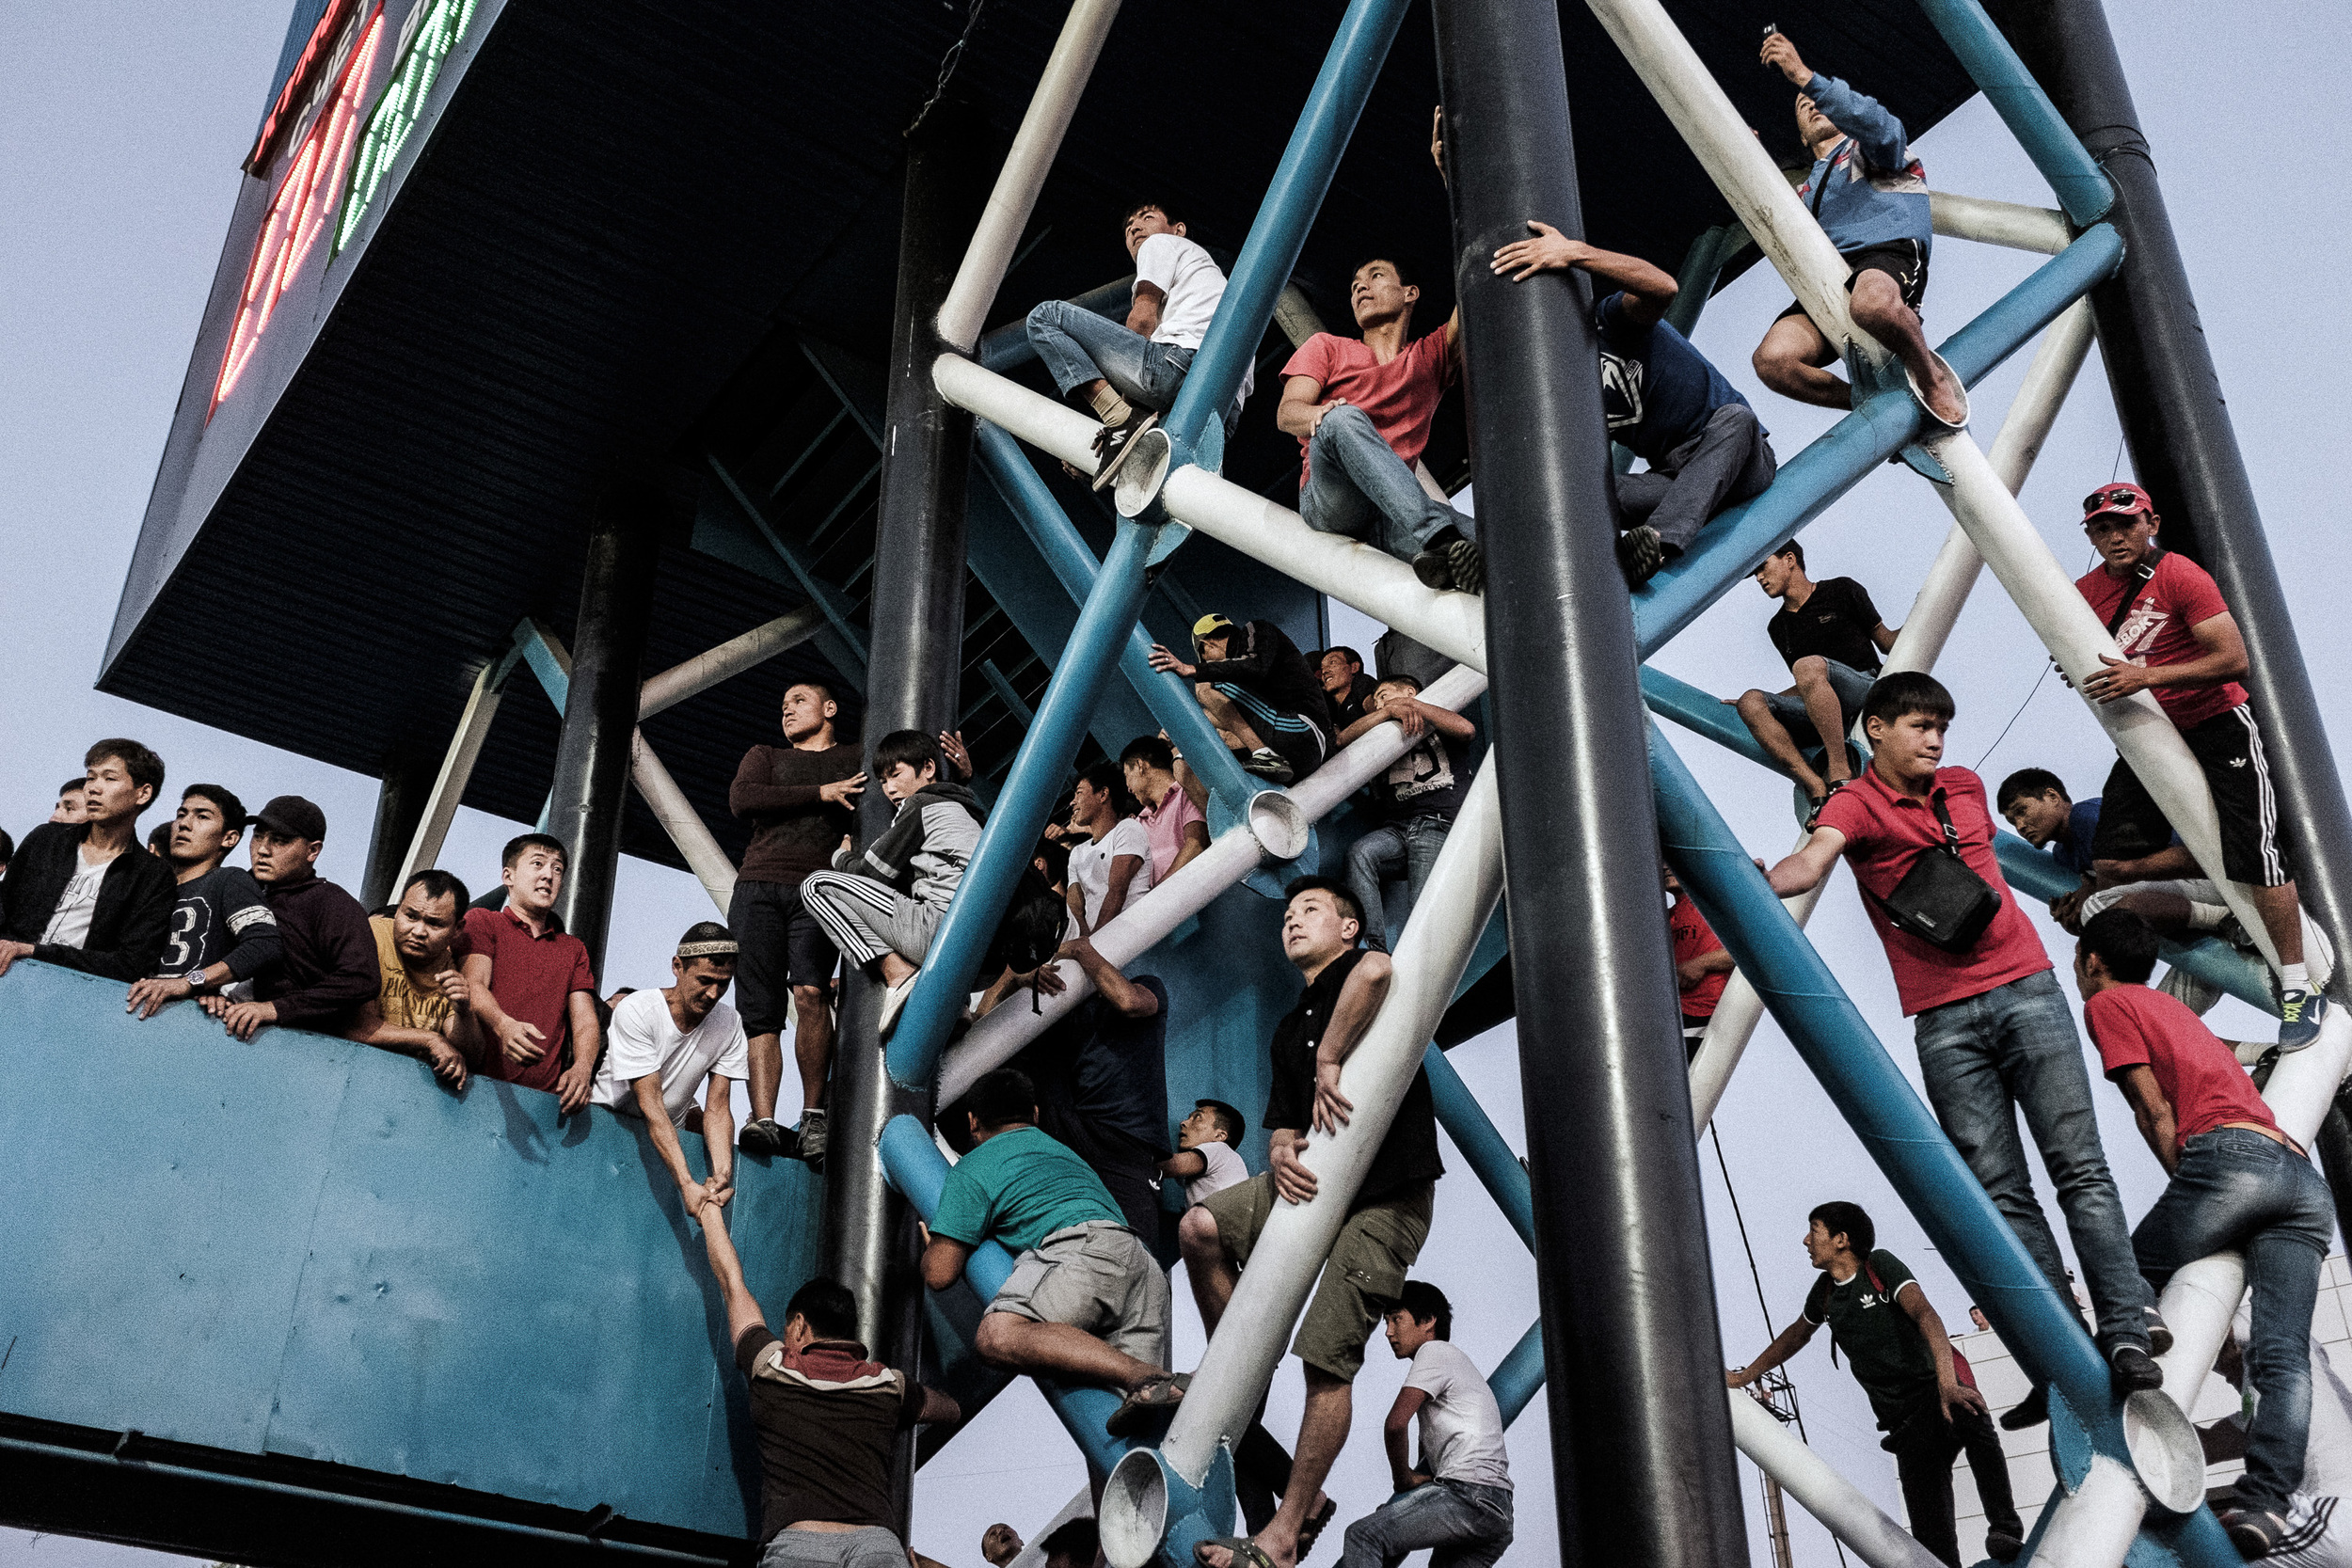 """The outsiders"". Kyrgyzstan - Australia world cup qualifying football game. Kyrgyzstan, Bishkek, 16.6.2015  Some fans perched on light towers, others scaled fences to get in, with an estimated 10,000 more fans crowded outside the gates - including a mob on the rooftop of an adjacent building. The story published on  Global Voices ."